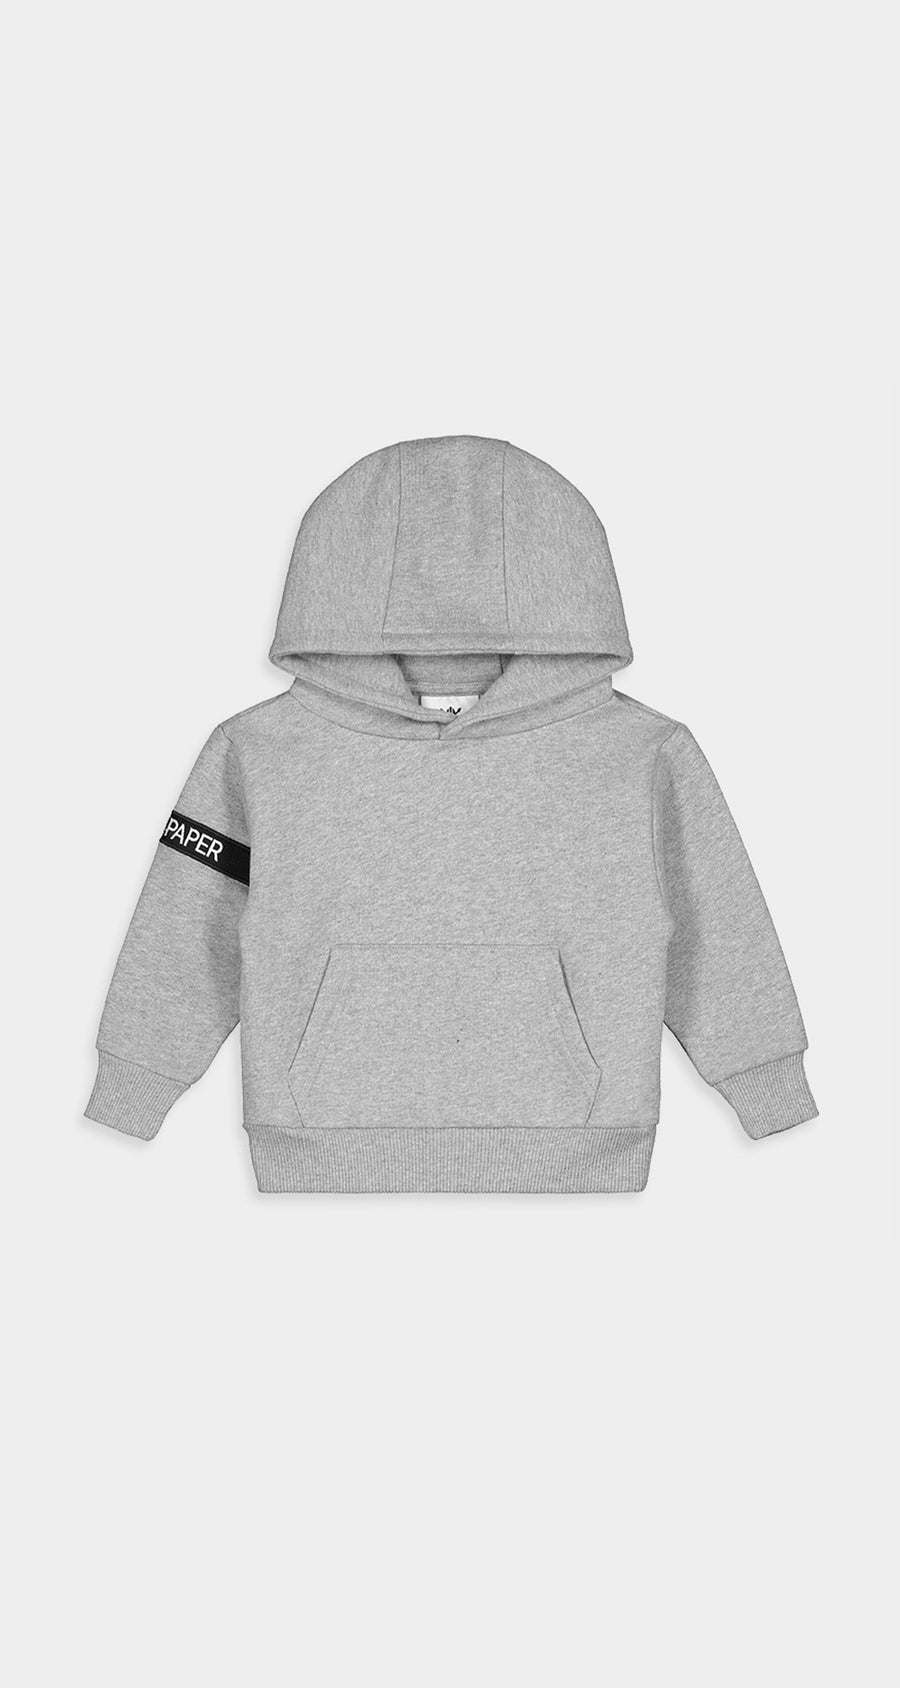 Daily Paper - Grey Kids Captain Hoody Front